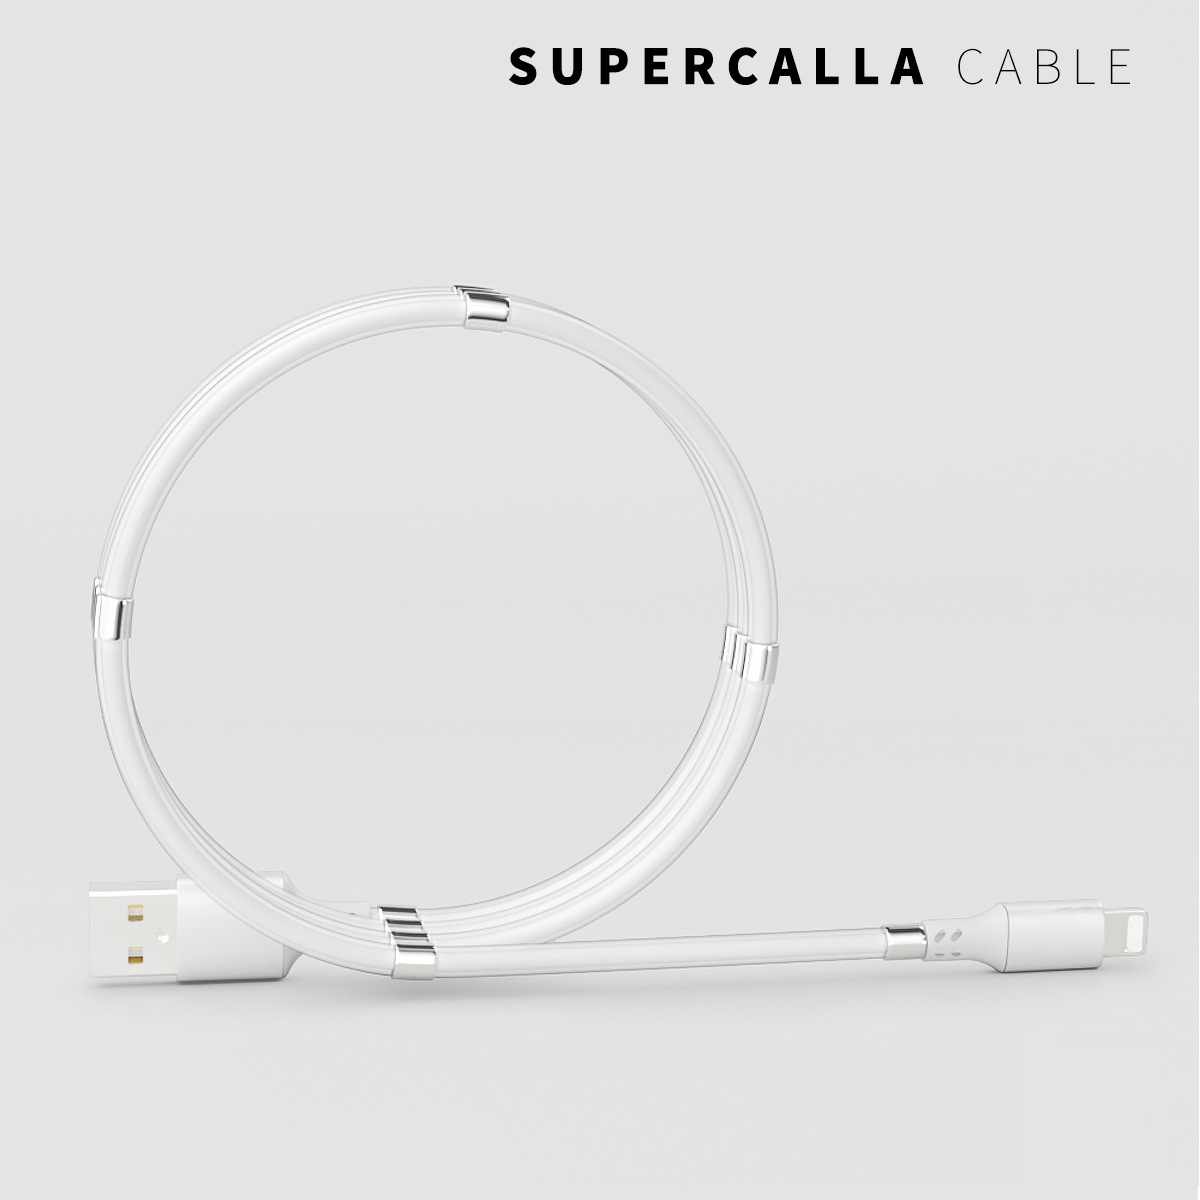 ⚡Supercalla magnetic fast charging cable🔥